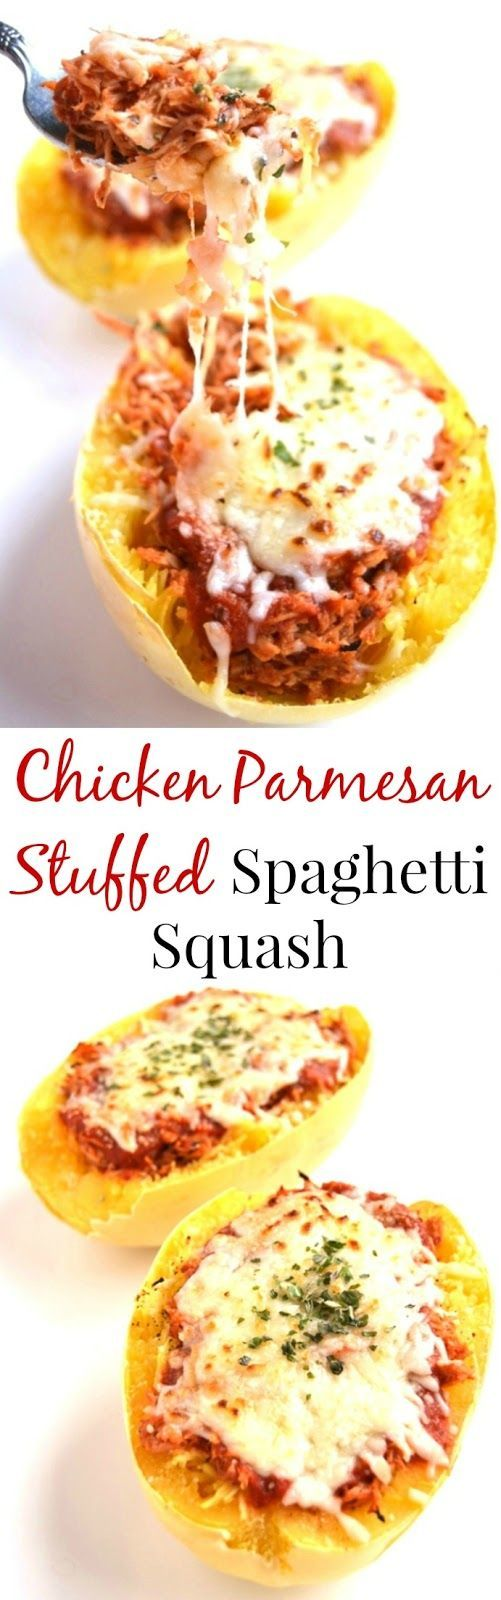 Chicken Parmesan Stuffed Spaghetti Squash is a much healthier but still delicious version of your favorite chicken parm. The chicken is cooked in the slow cooker to make it easy! www.nutritionistreviews.com